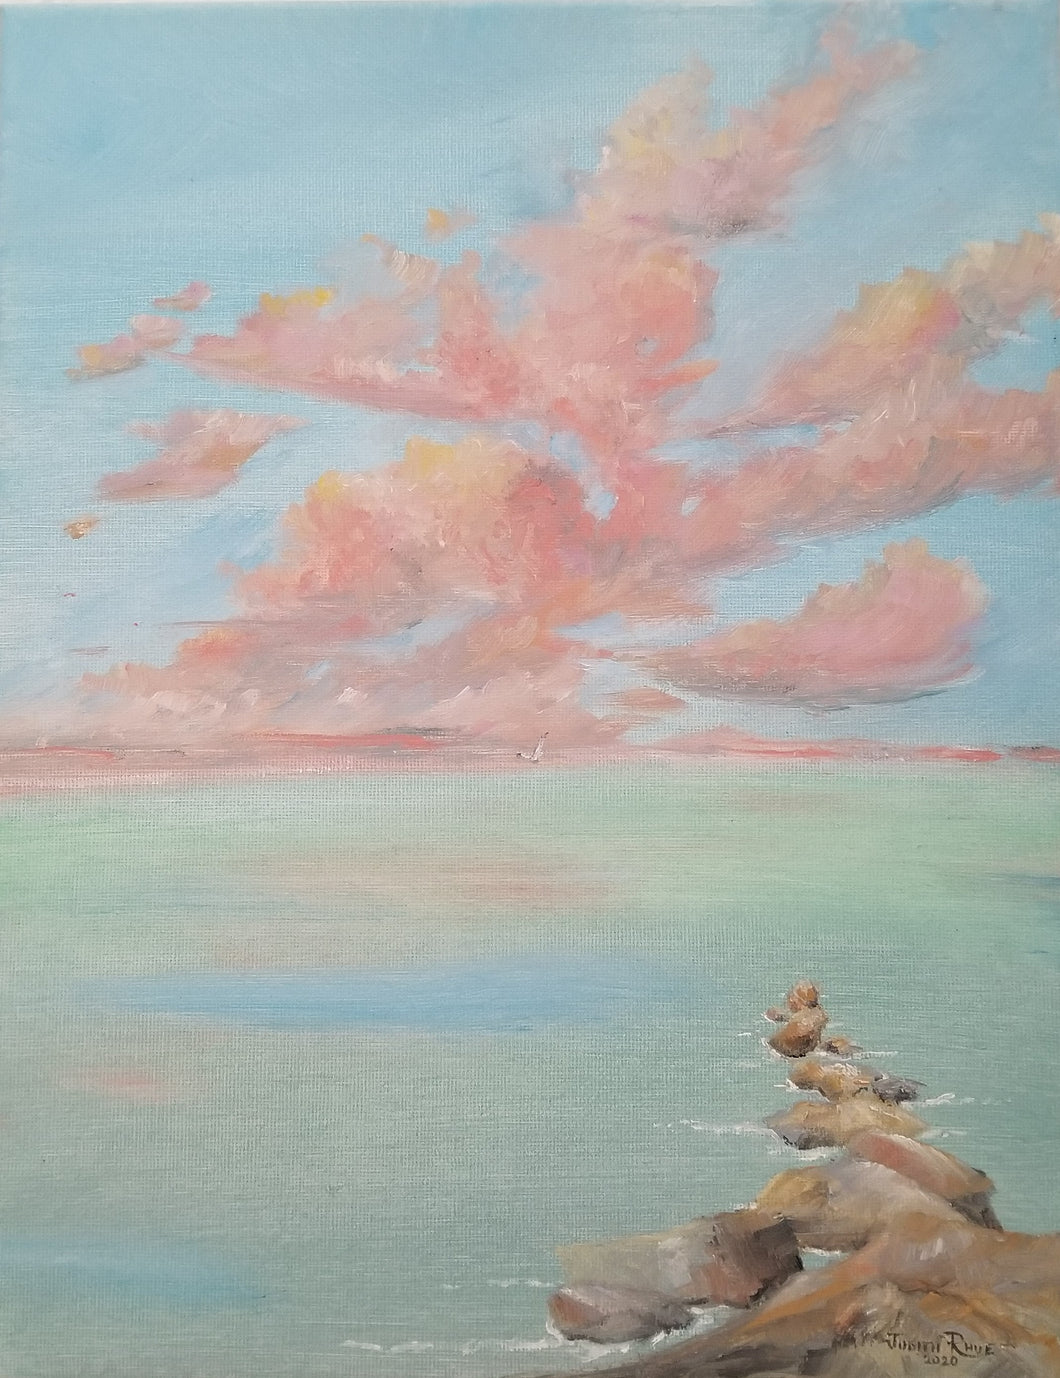 Indelible Day - original oil painting, beach, landscape, clouds, cloudscape, shore, rocks, ocean, sea, tropical, canvas, wall art, home decor, wall decor